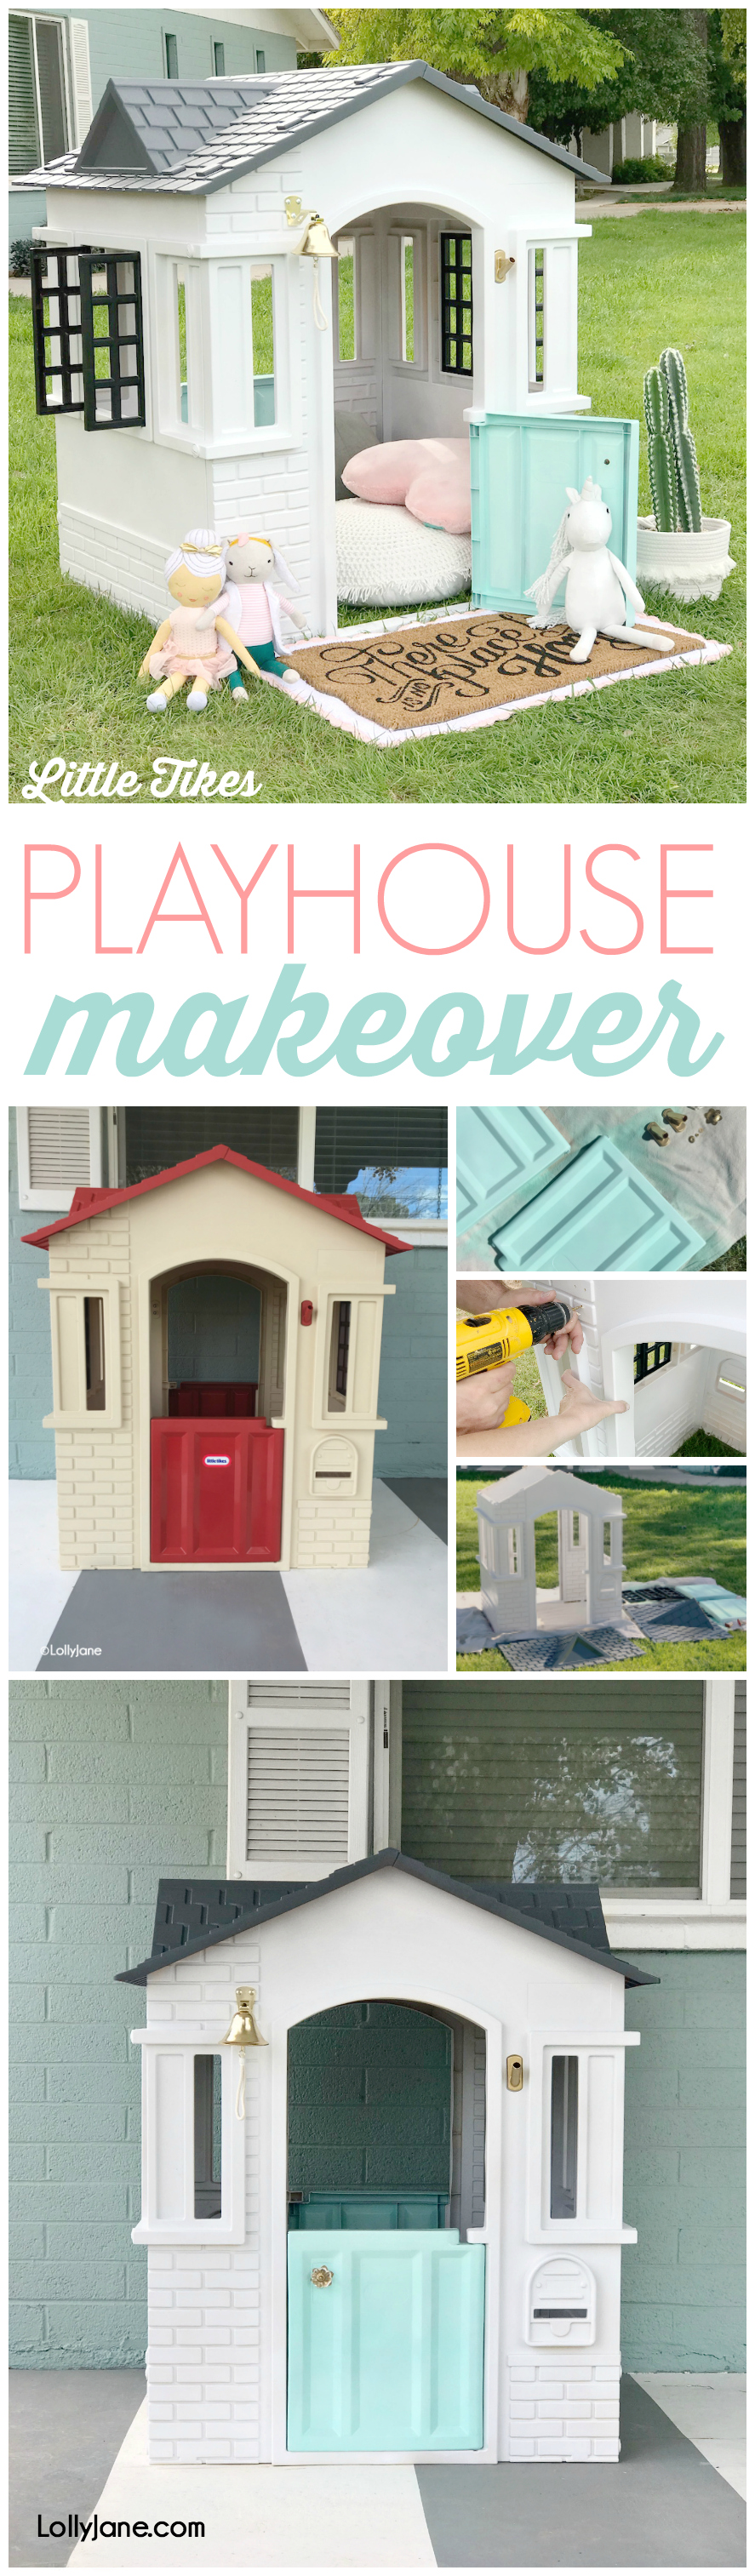 CUTEST Playhouse Makeover! And SO easy!!! Turn this yard eyesore into a little modern farmhouse in just a few steps! #diy #modernfarmhouse #playhousemakeover #littletikes